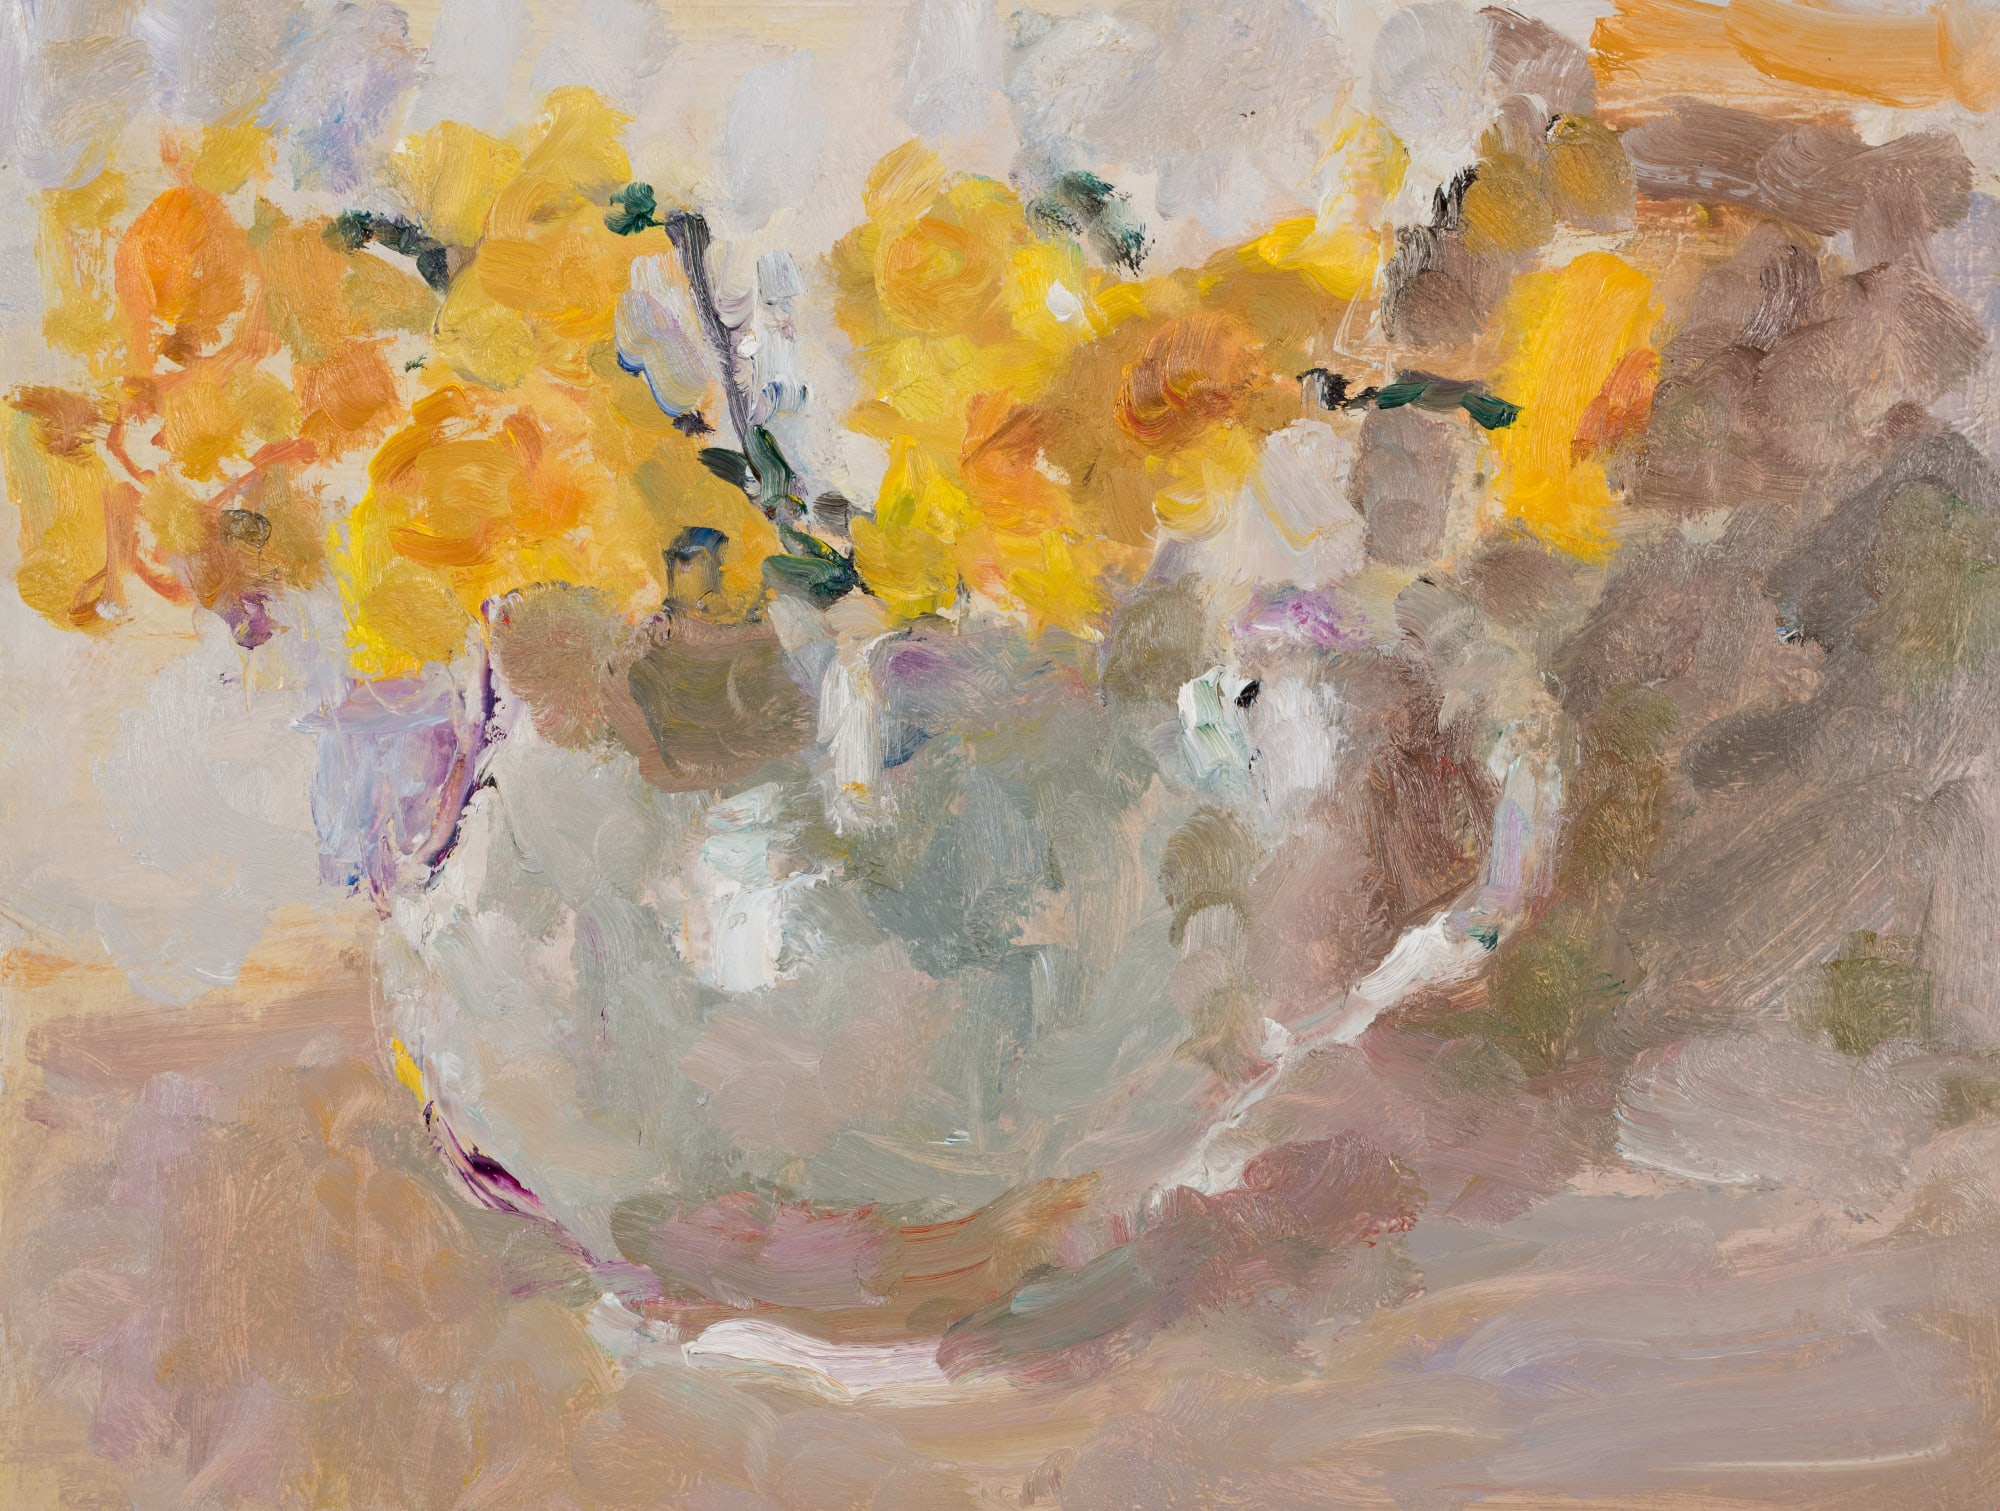 Lynne Cartlidge: NARCISSI, SHADOWS AND REFLECTED LIGHT